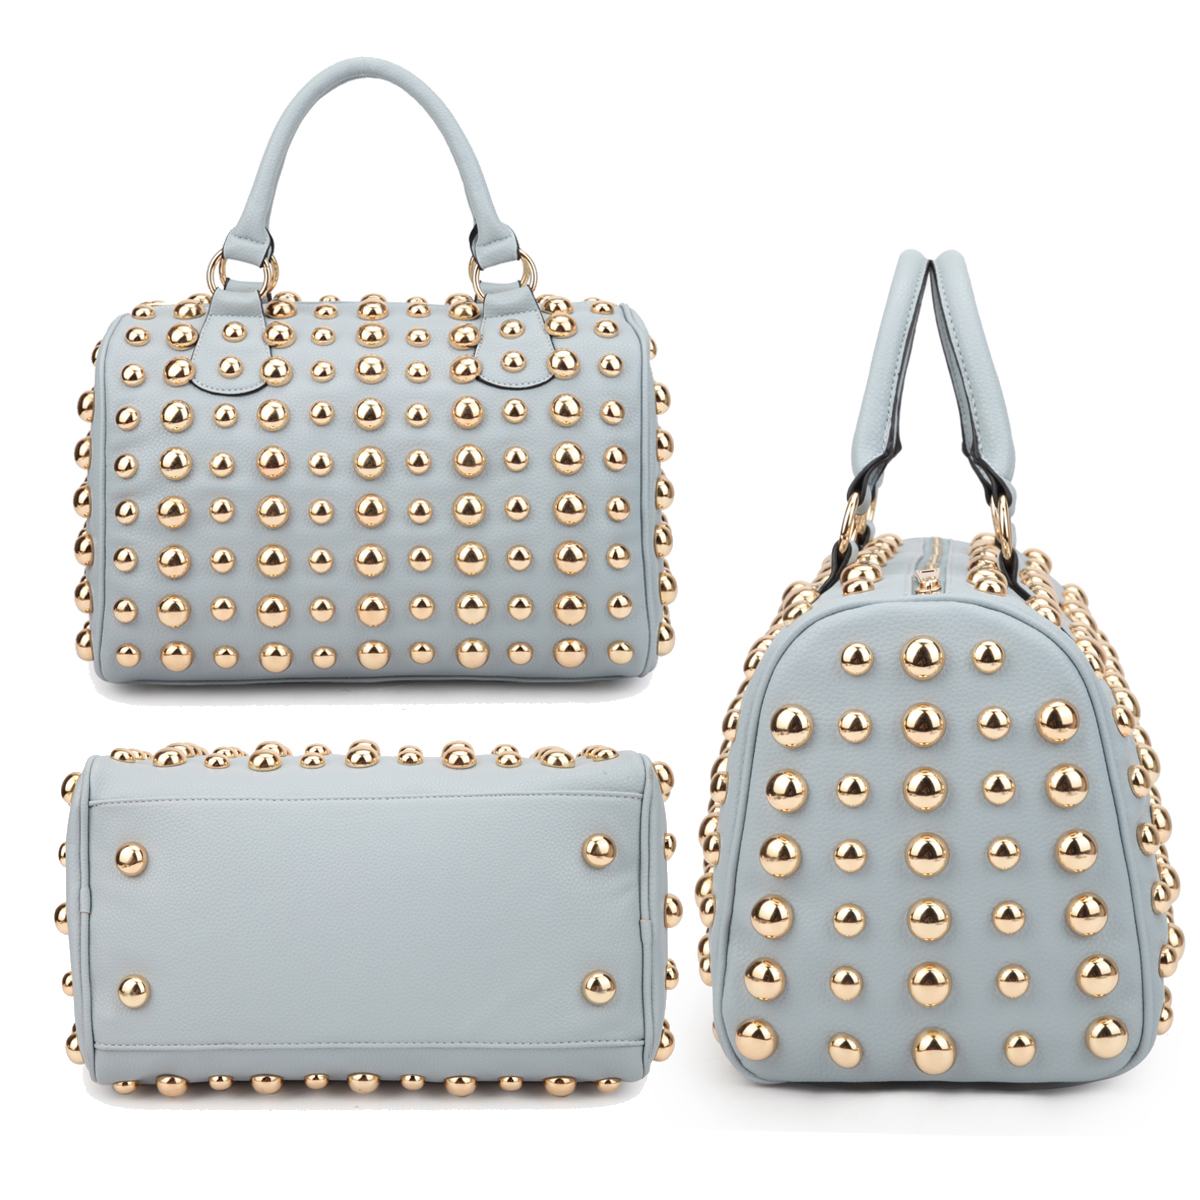 Dasein® Bling Studded Barrel Body Satchel